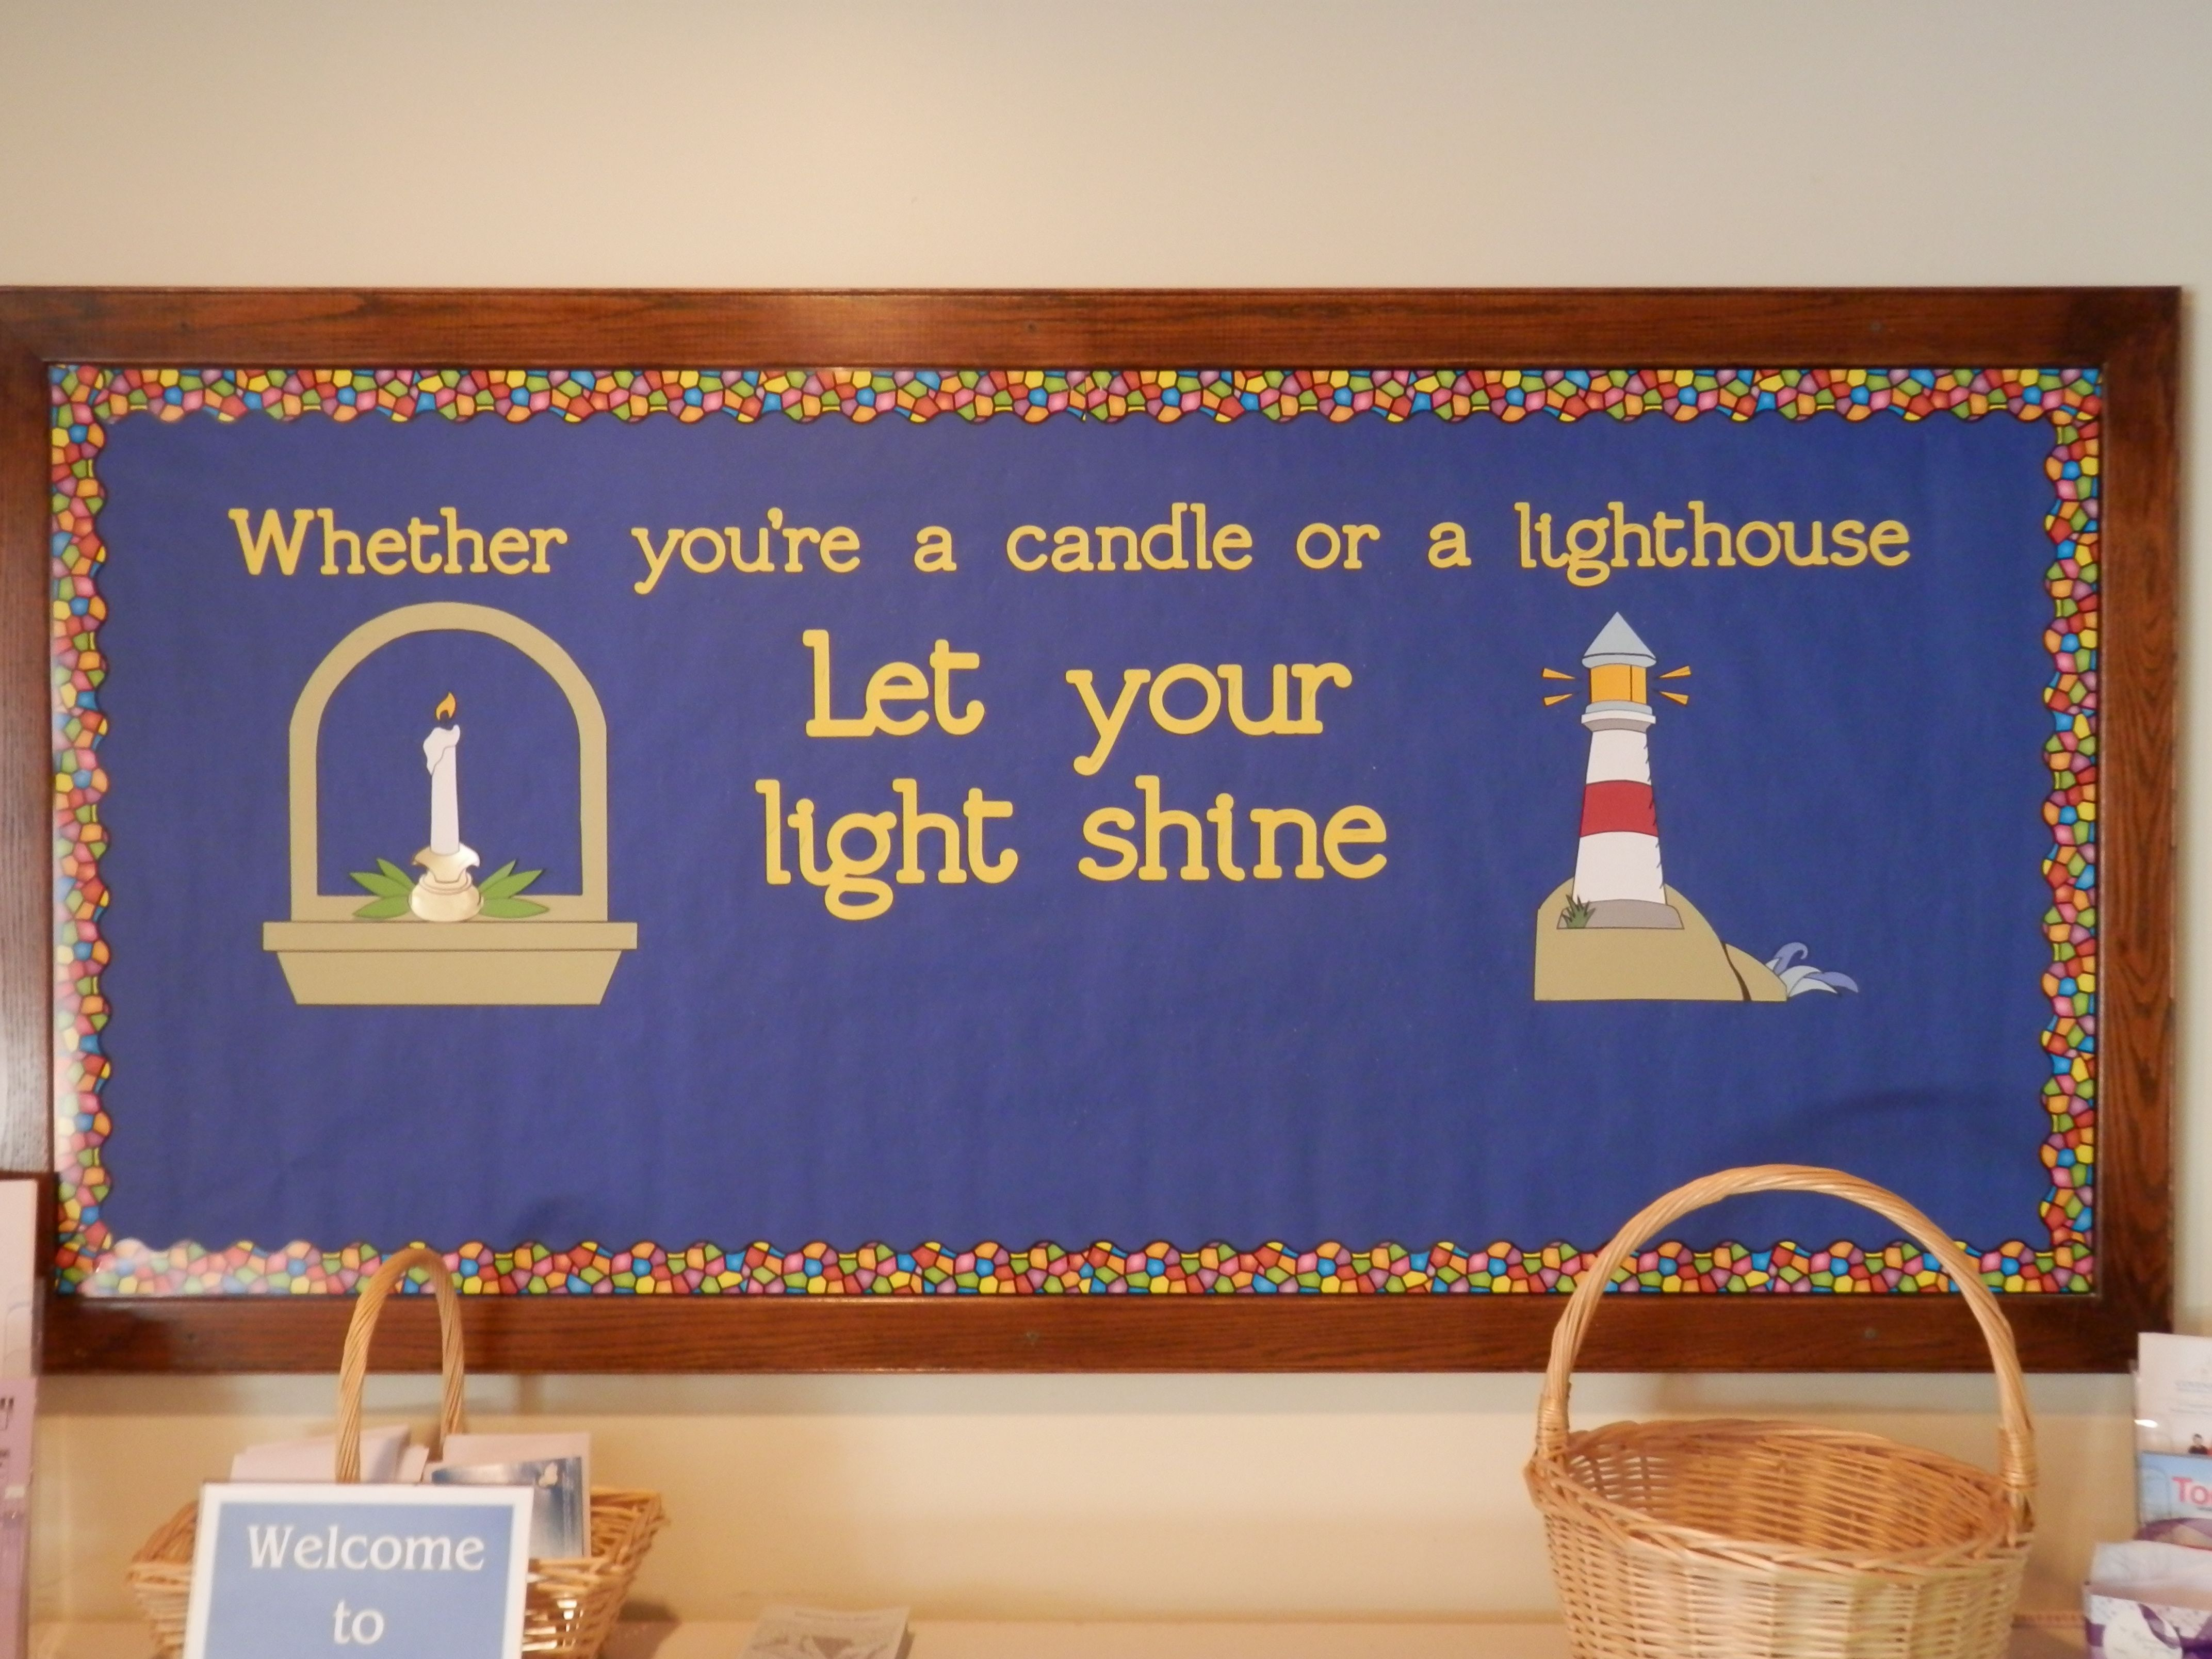 Christian easter bulletin board ideas - So True Whether You Re A Candle Or A Lighthouse Let Your Light Shine Find This Pin And More On Bulletin Board Ideas